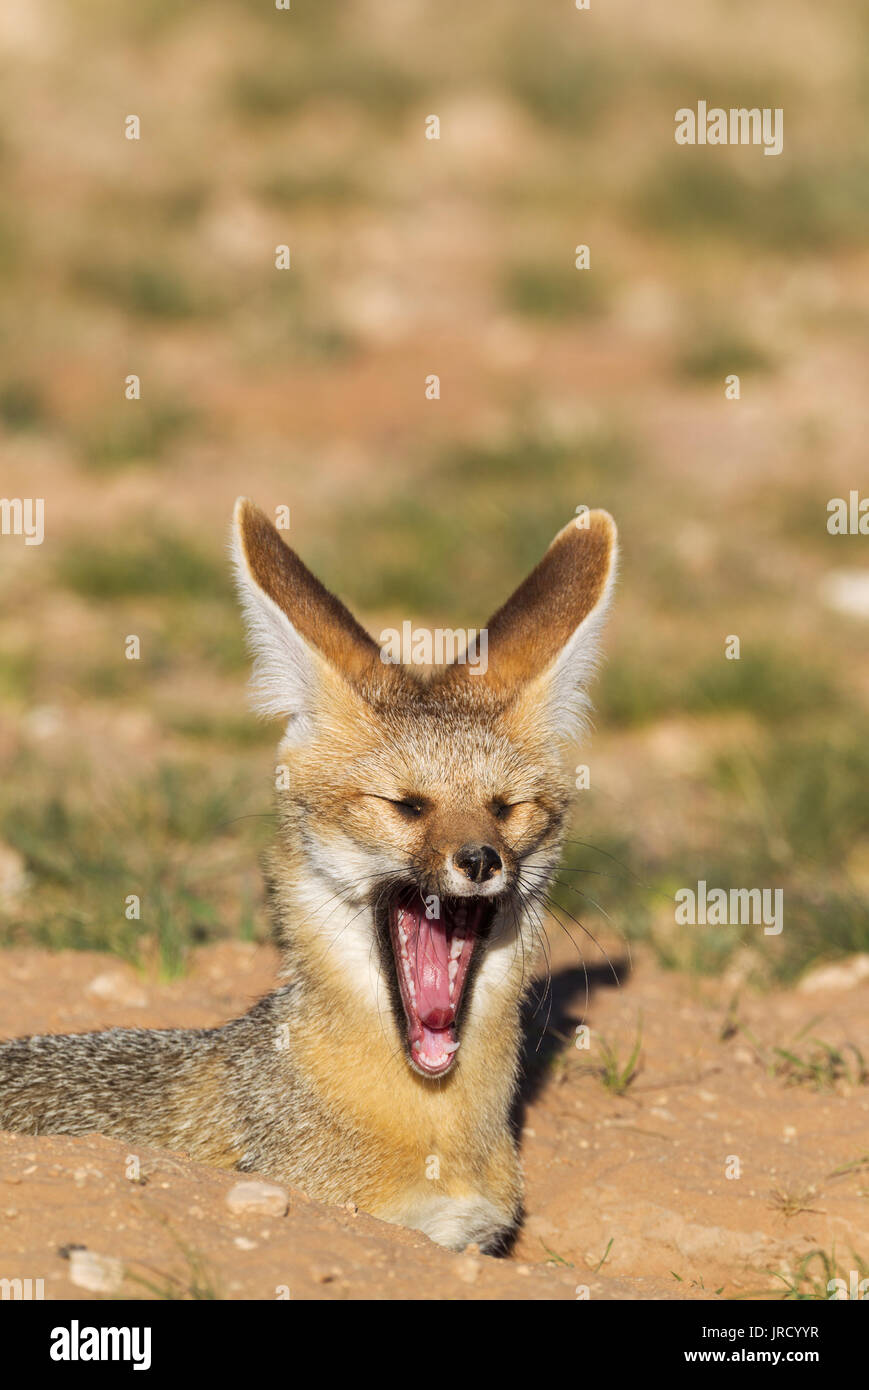 Cape Fox (Vulpes chama), at its burrow, yawning, Kalahari Desert, Kgalagadi Transfrontier Park, South Africa - Stock Image